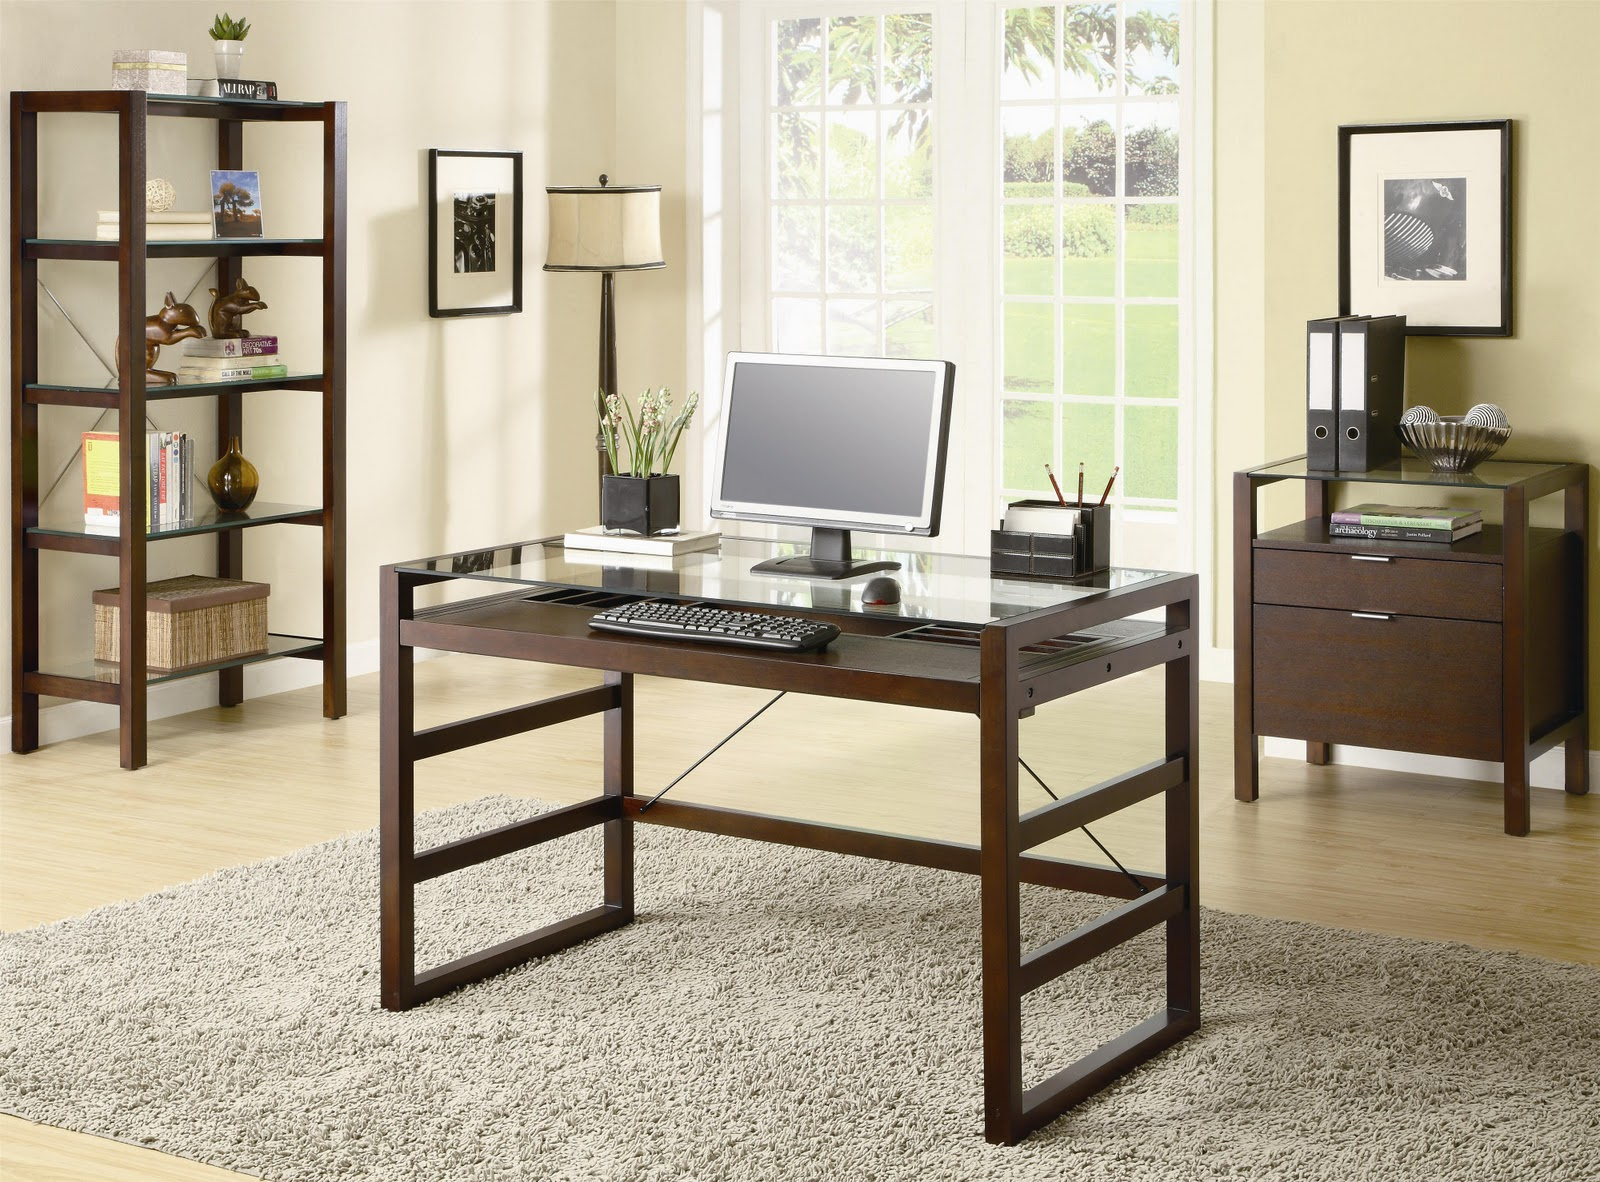 Want your home office look sophisticated?